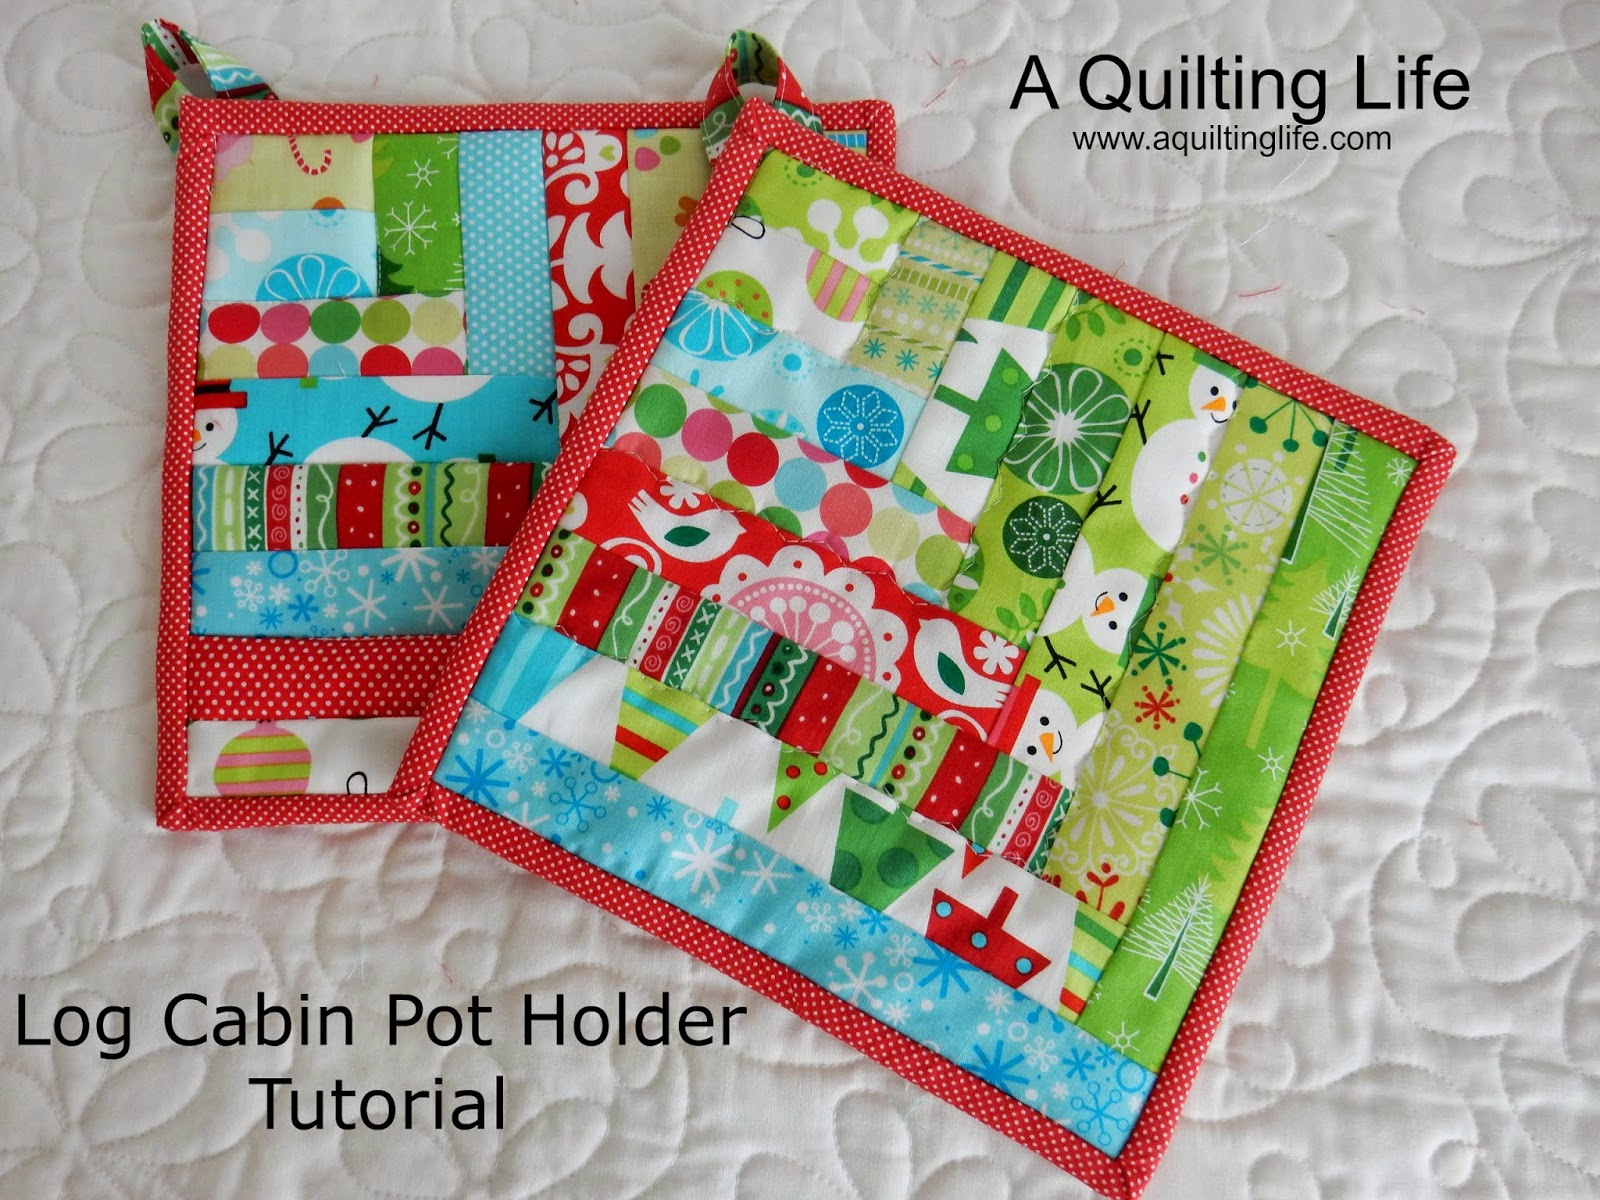 Log Cabin Pot Holder Tutorial | A Quilting Life - a quilt blog : quilted potholders tutorials - Adamdwight.com